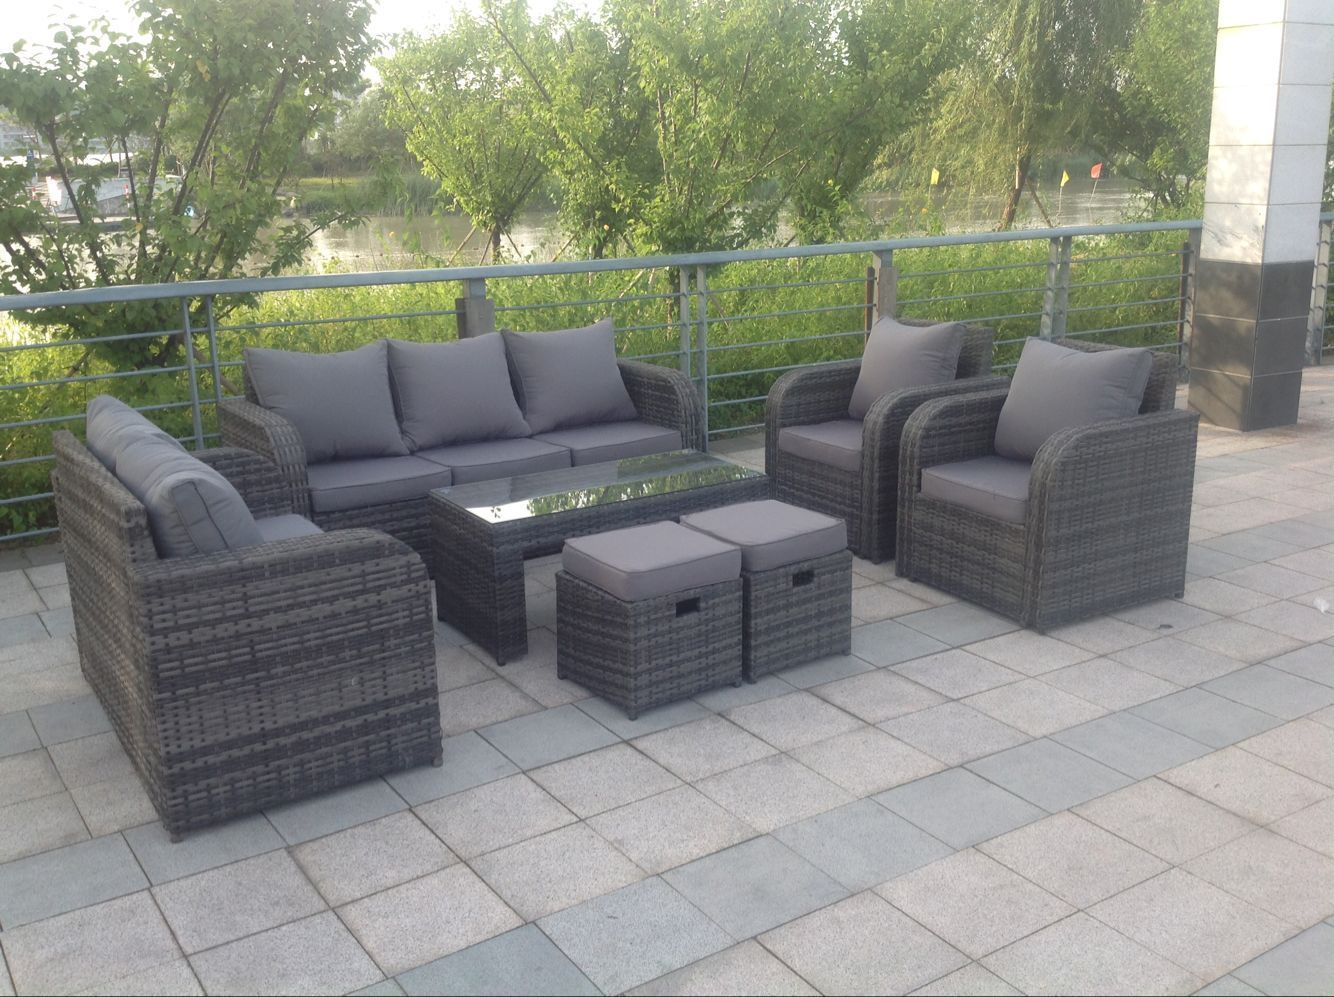 Grey Rattan Garden Furniture Set Sofa Reclining Chairs Conservatory Outdoor Ebay Outdoor Sofa Sets Rattan Garden Furniture Grey Rattan Garden Furniture